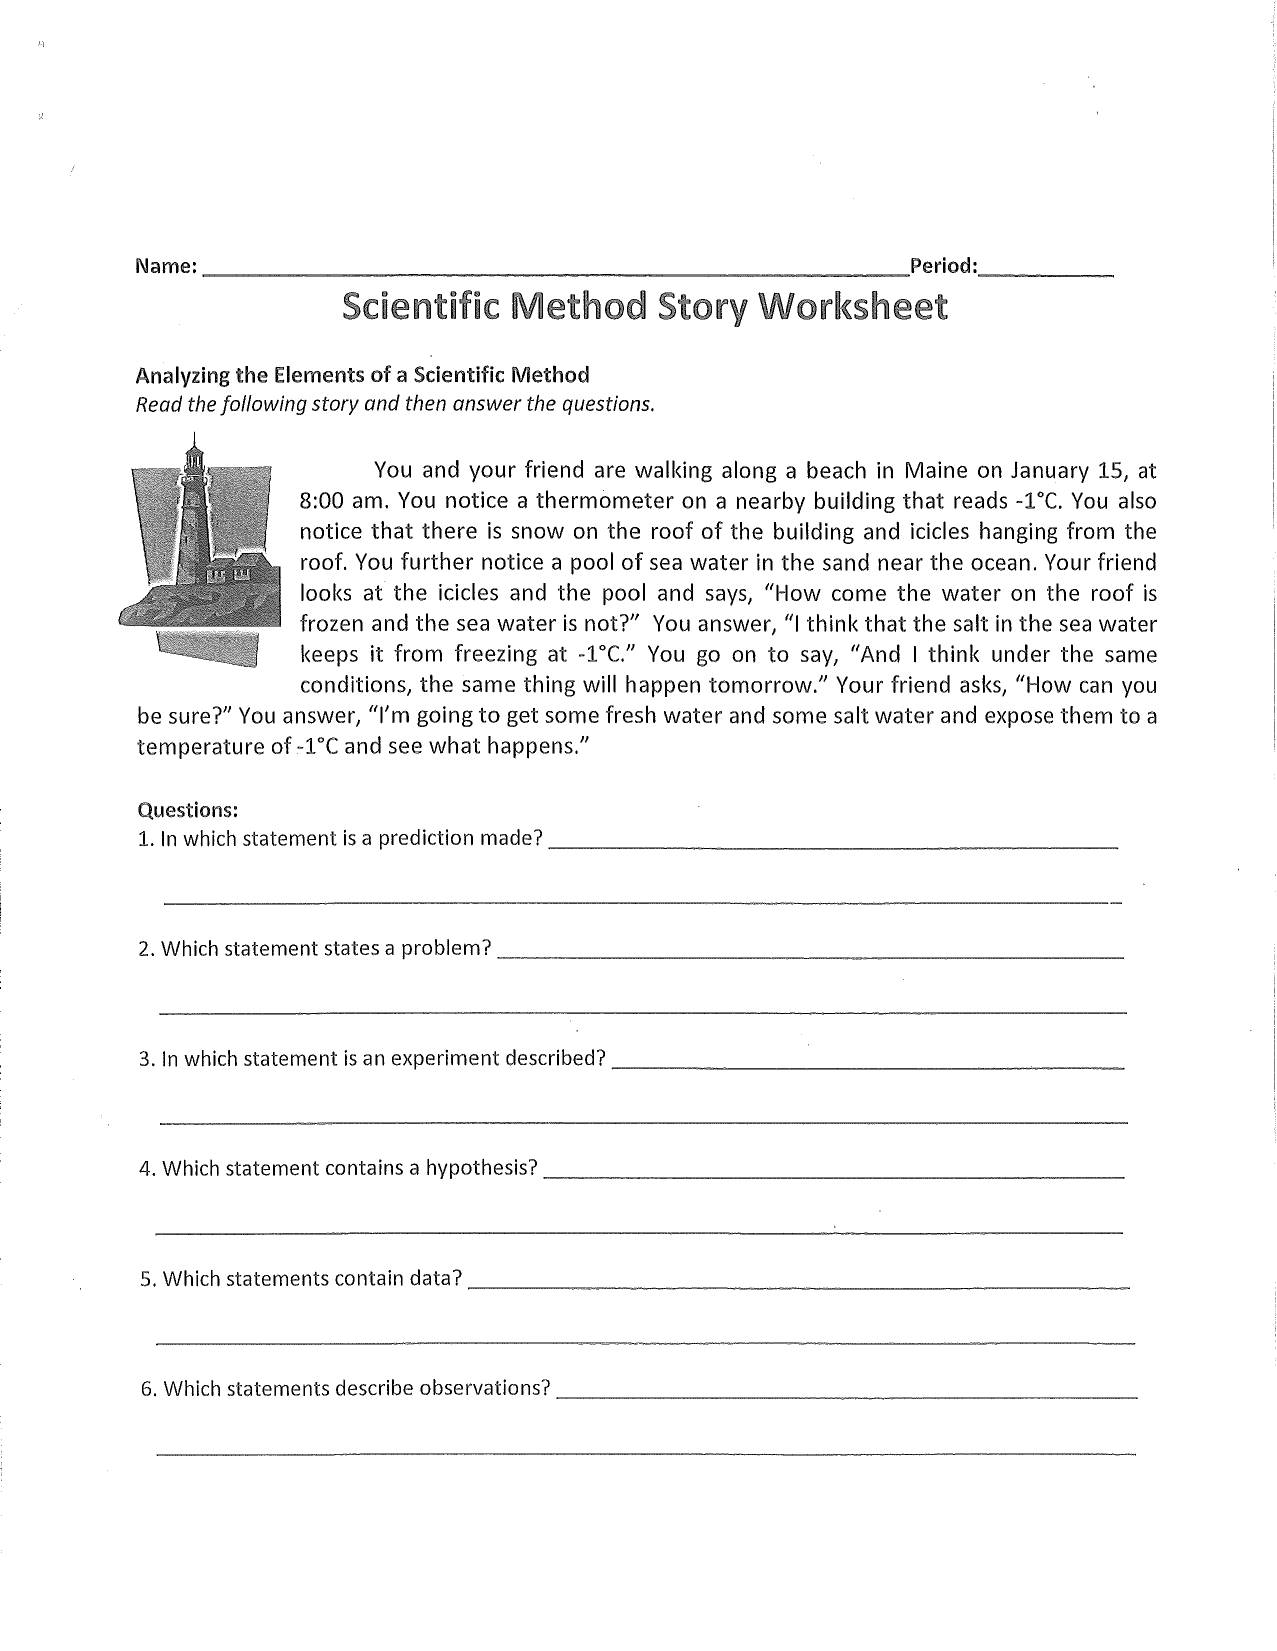 scientific method spongebob worksheet answers Termolak – Science Worksheet Answers